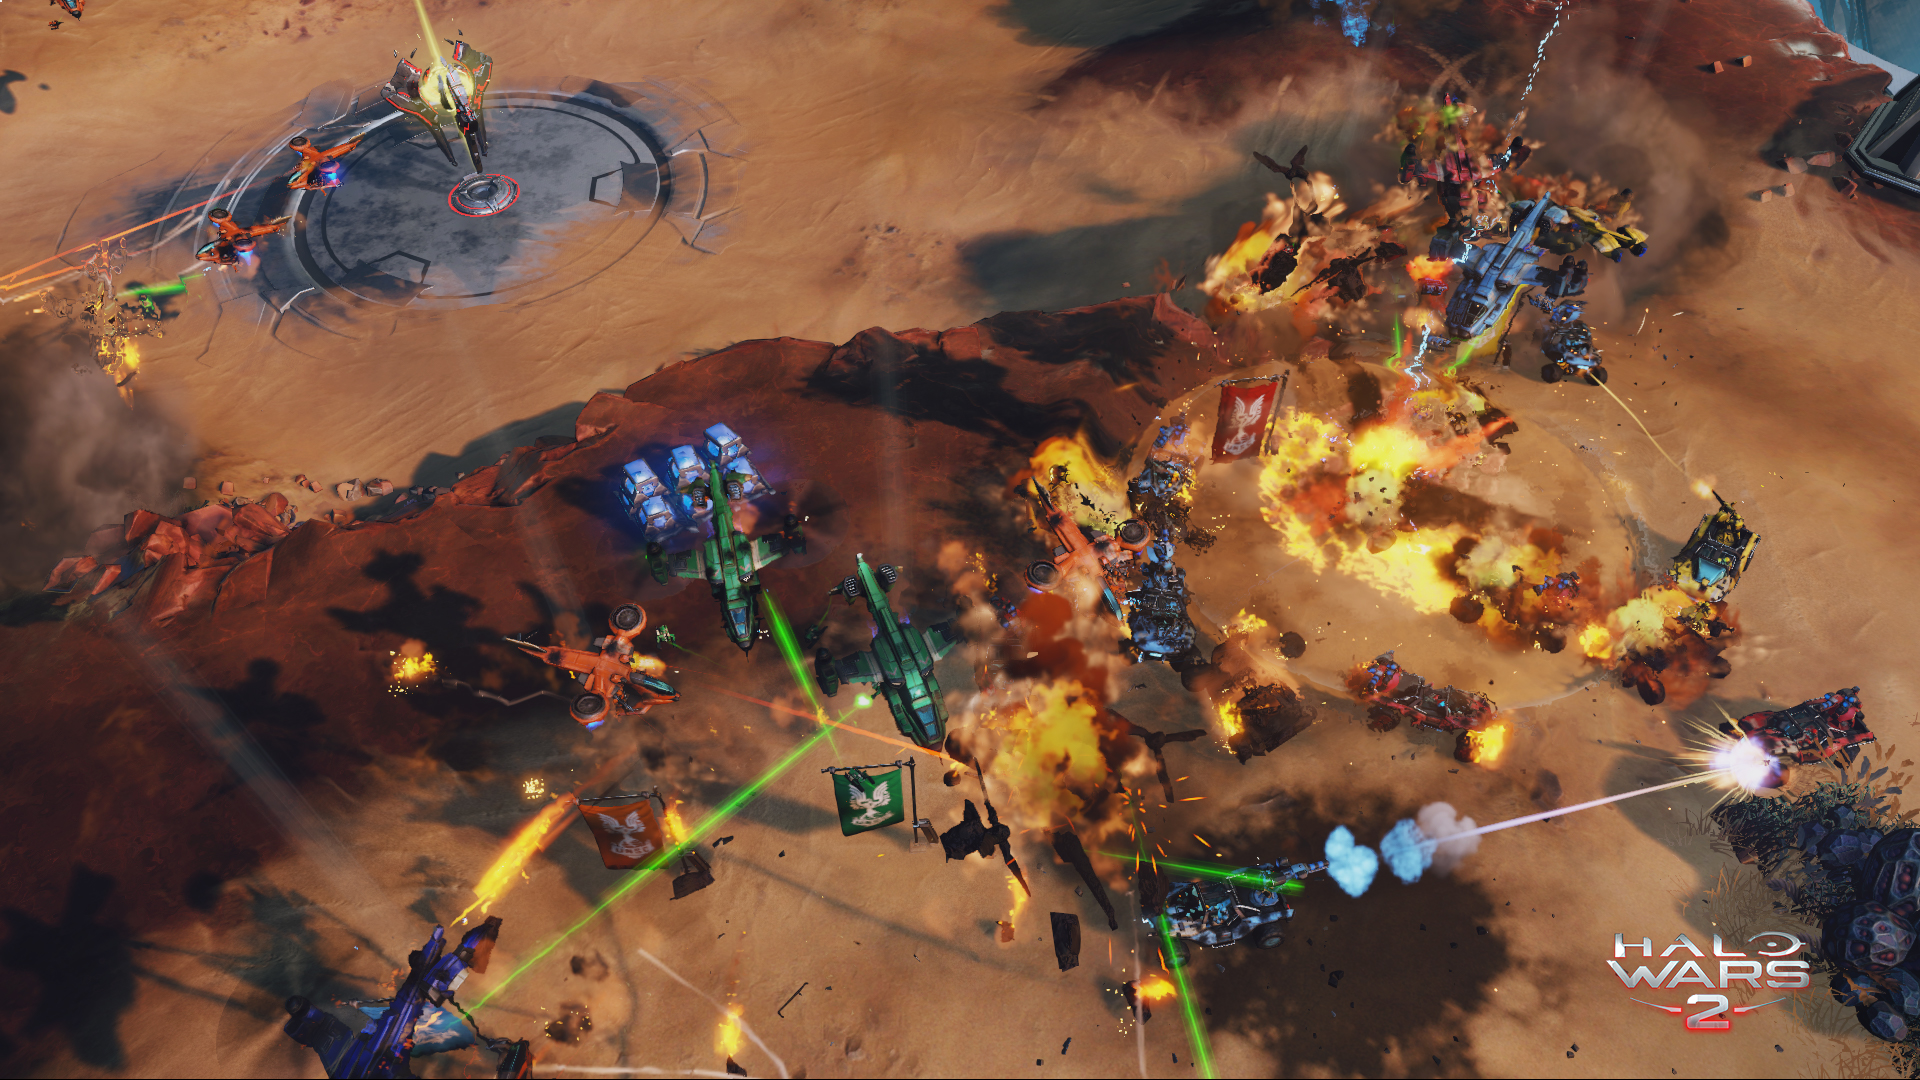 Play Halo Wars 2 against Xbox One players thanks to crossplay update